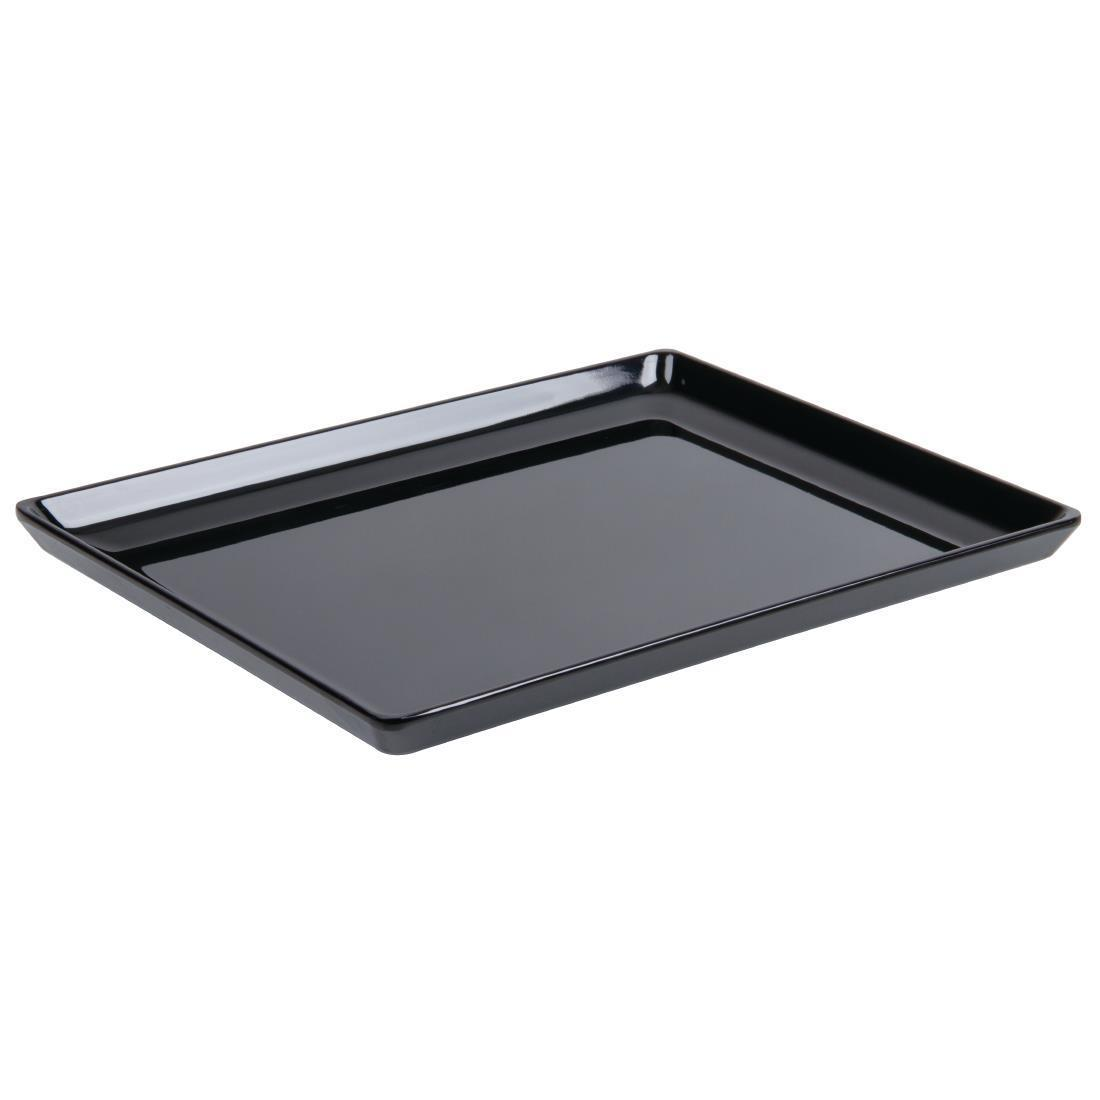 APS Float Melamine Tray Black GN 1/1 - Each - GF075